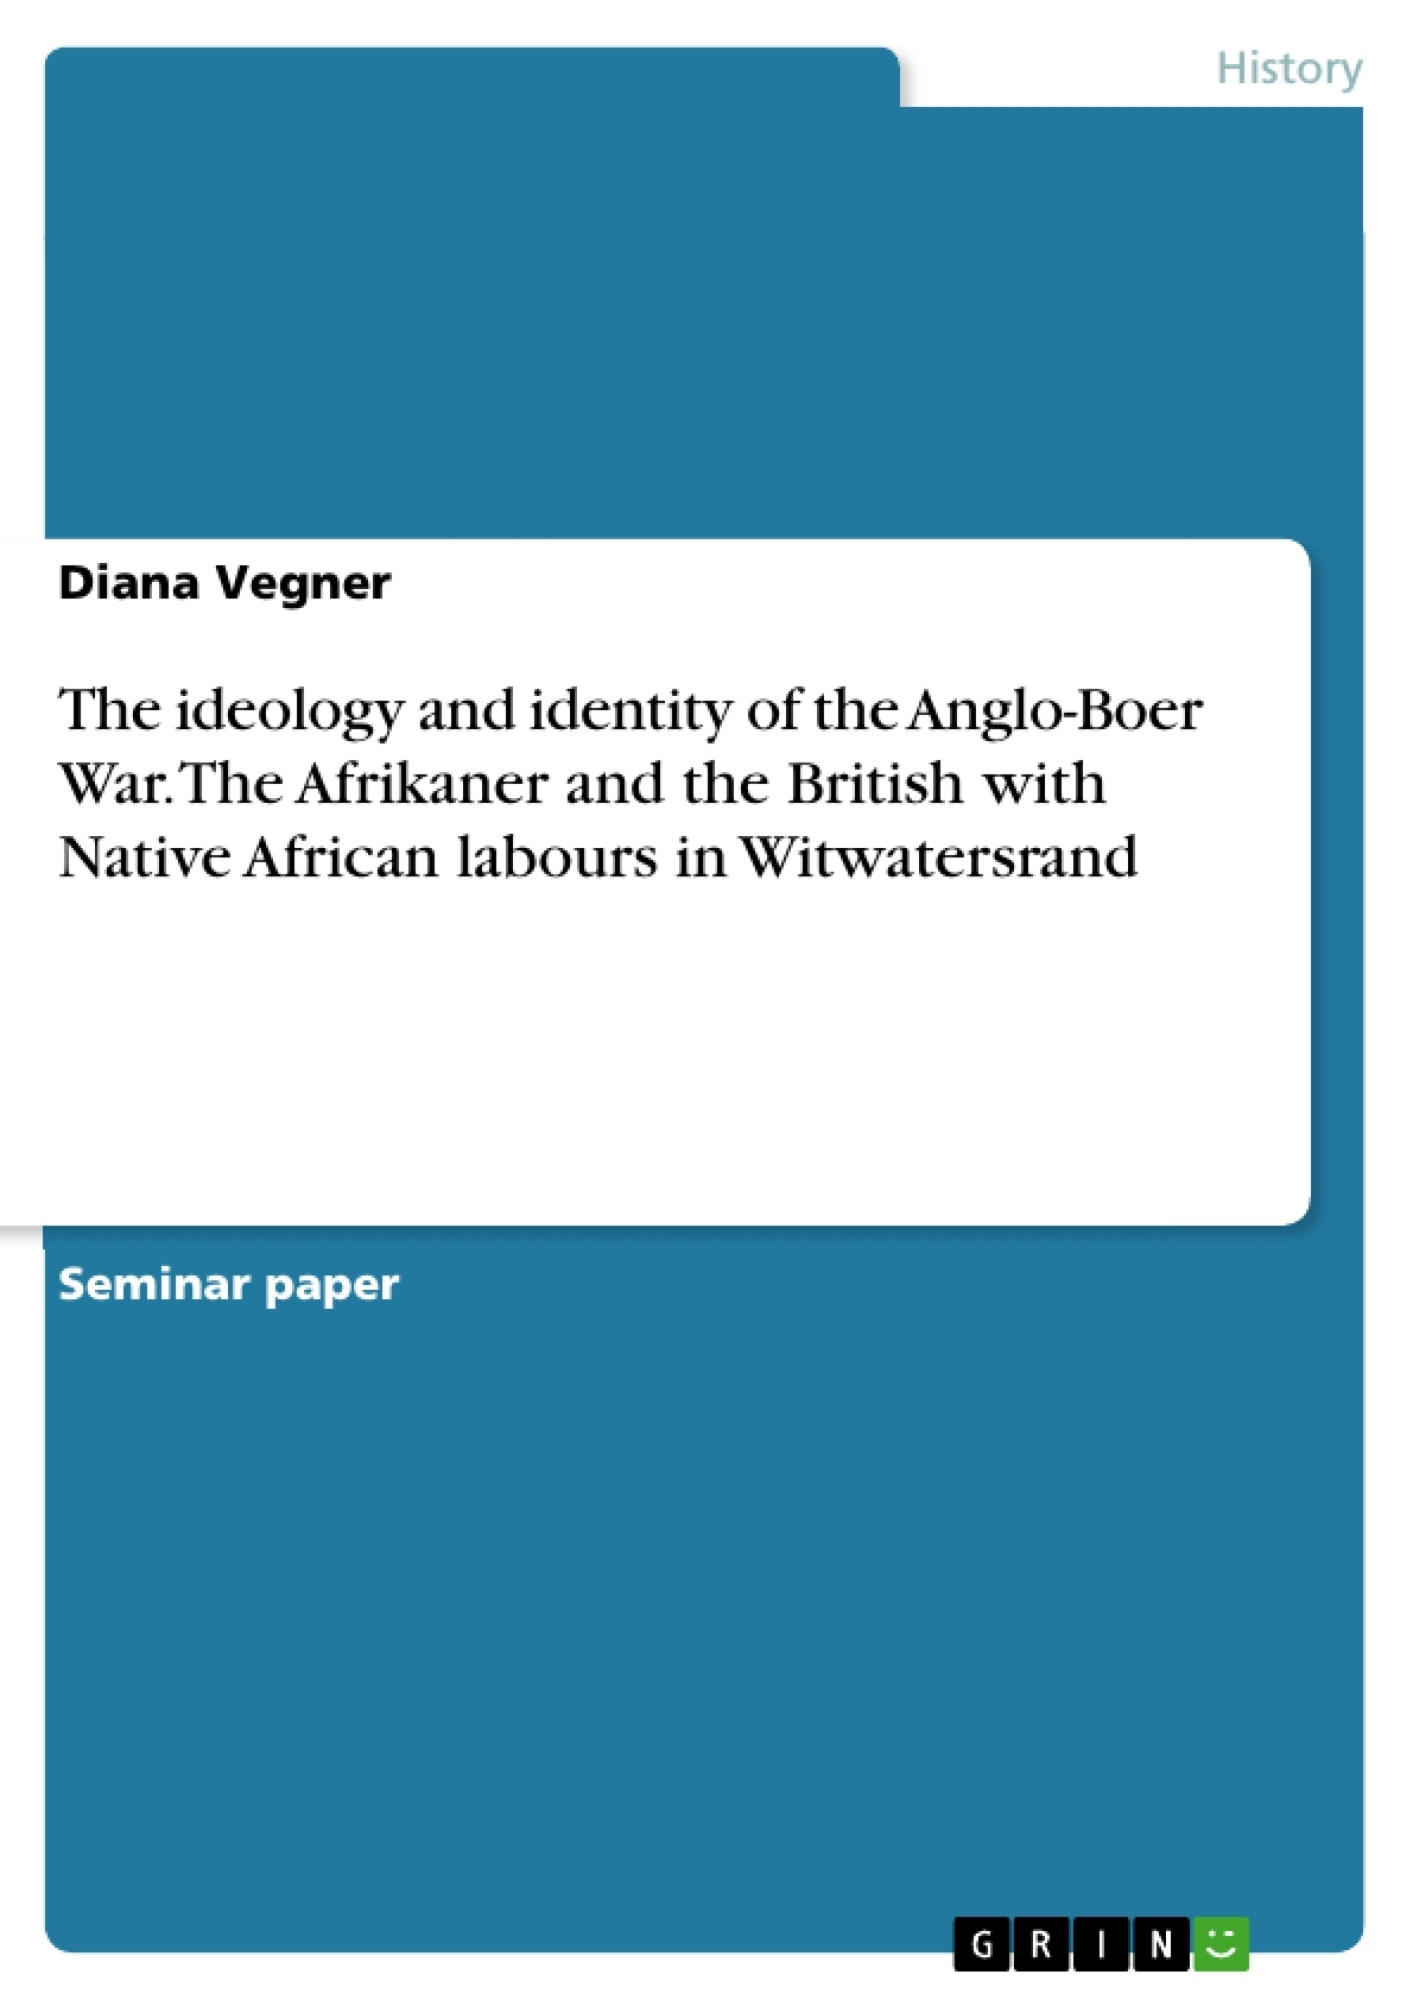 Title: The ideology and identity of the Anglo-Boer War. The Afrikaner and the British with Native African labours in Witwatersrand